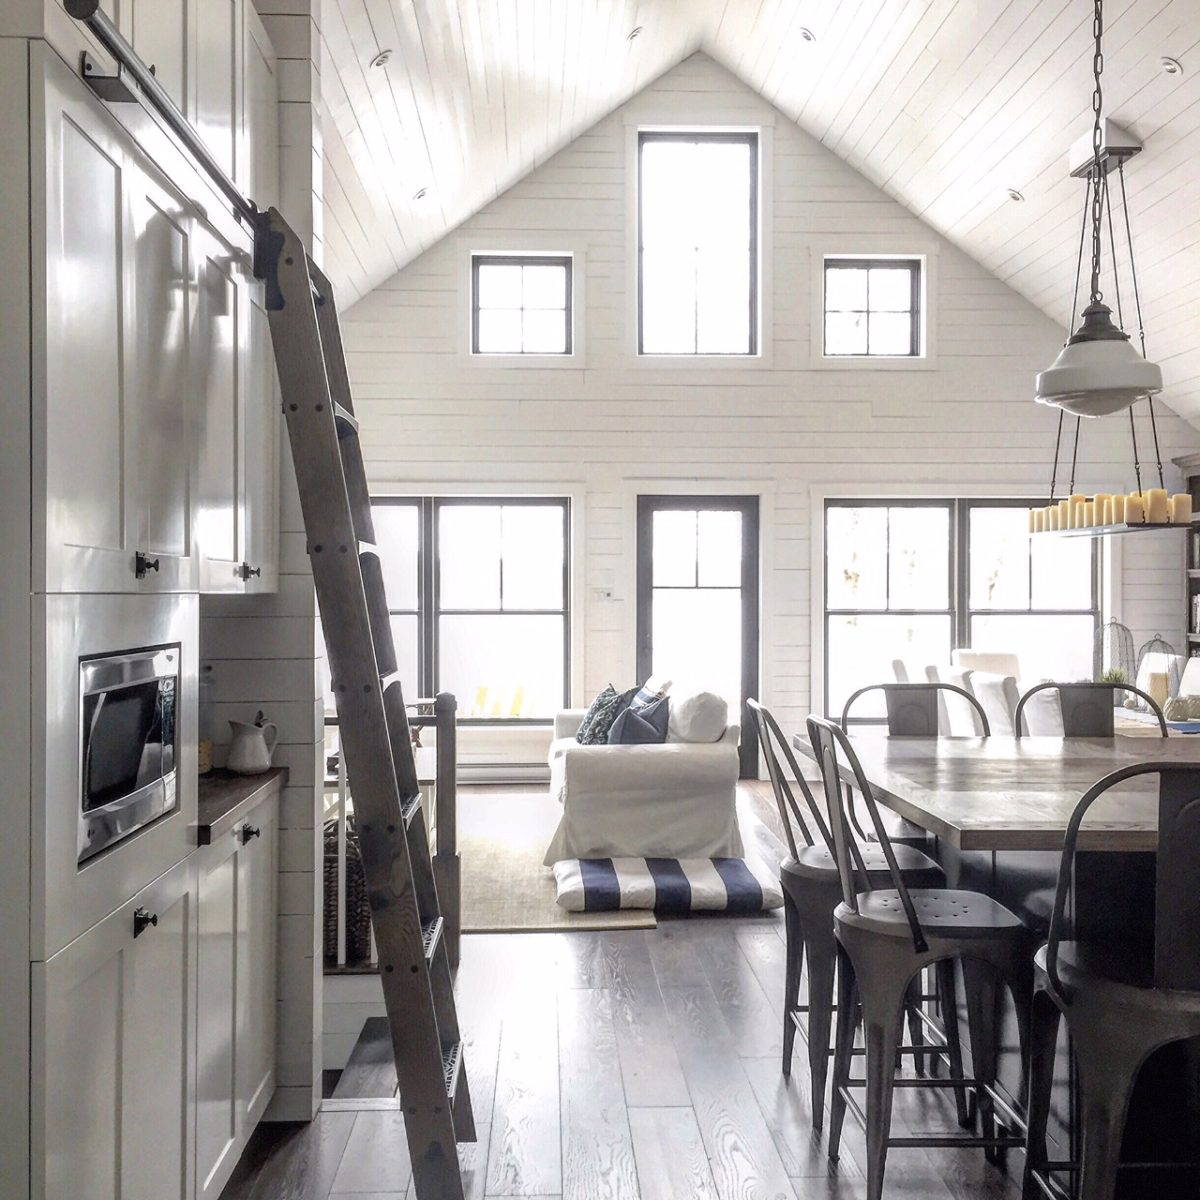 DESIGN INSPIRATIONS // Town and Country Style - My 100 Year Old Home